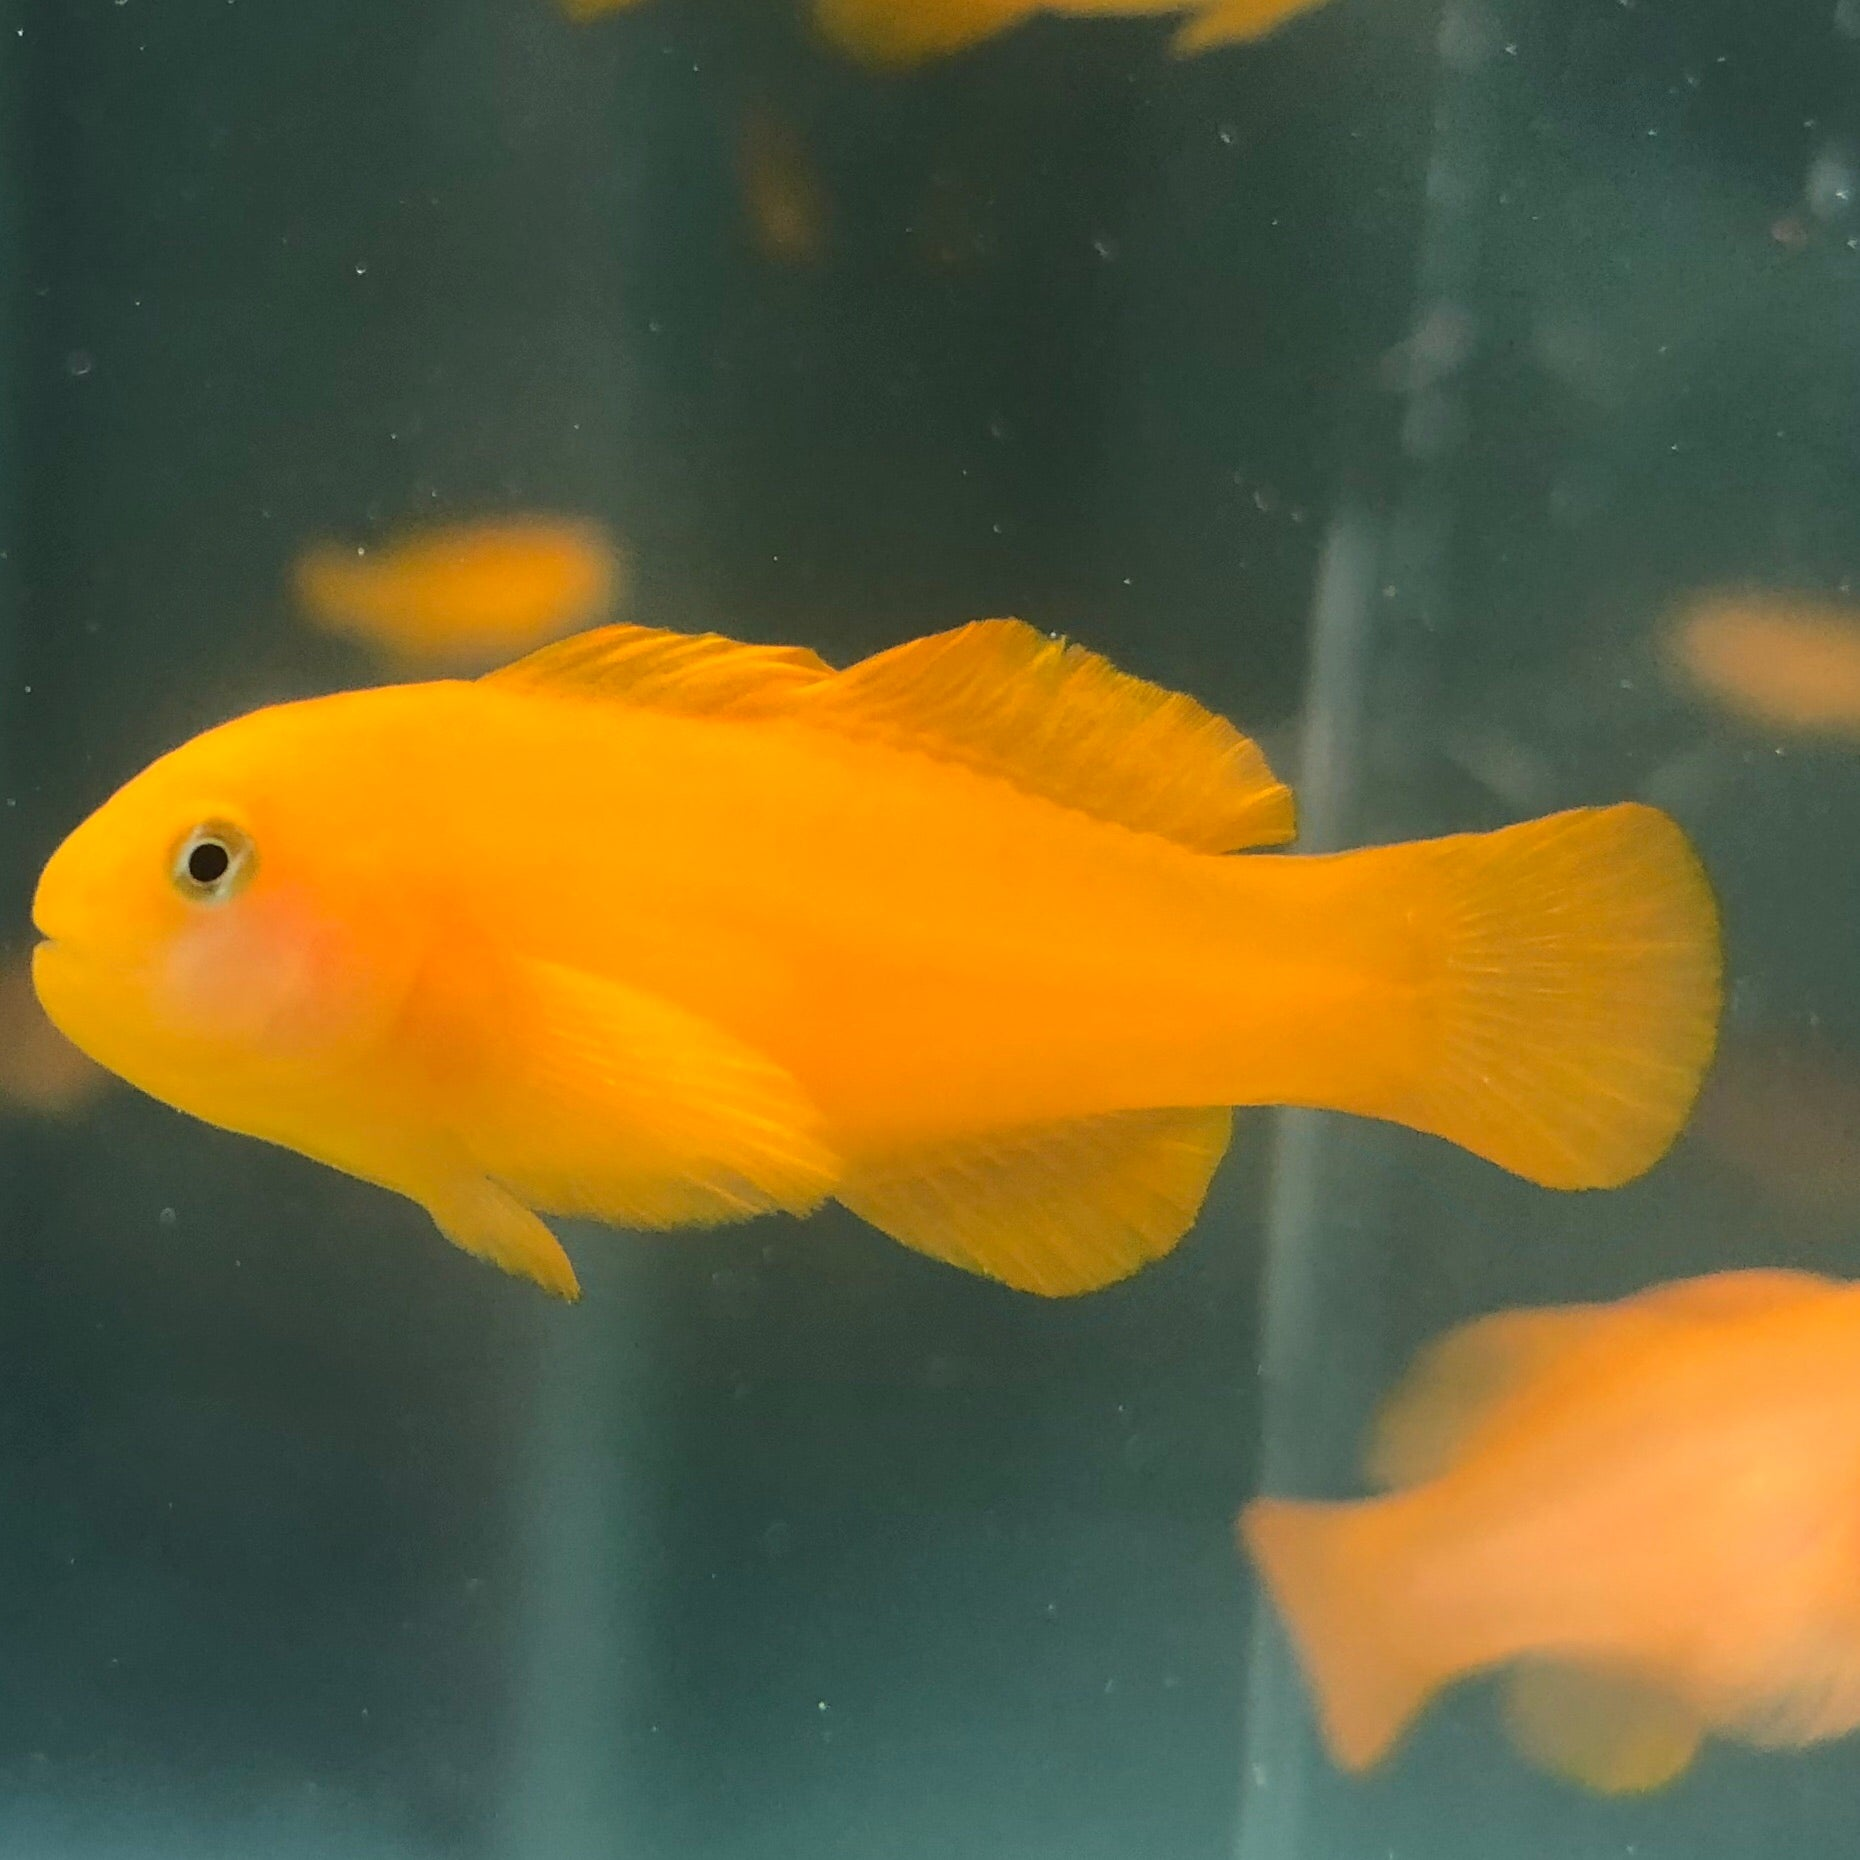 Aquarium Conditioned-Yellow Clown Goby